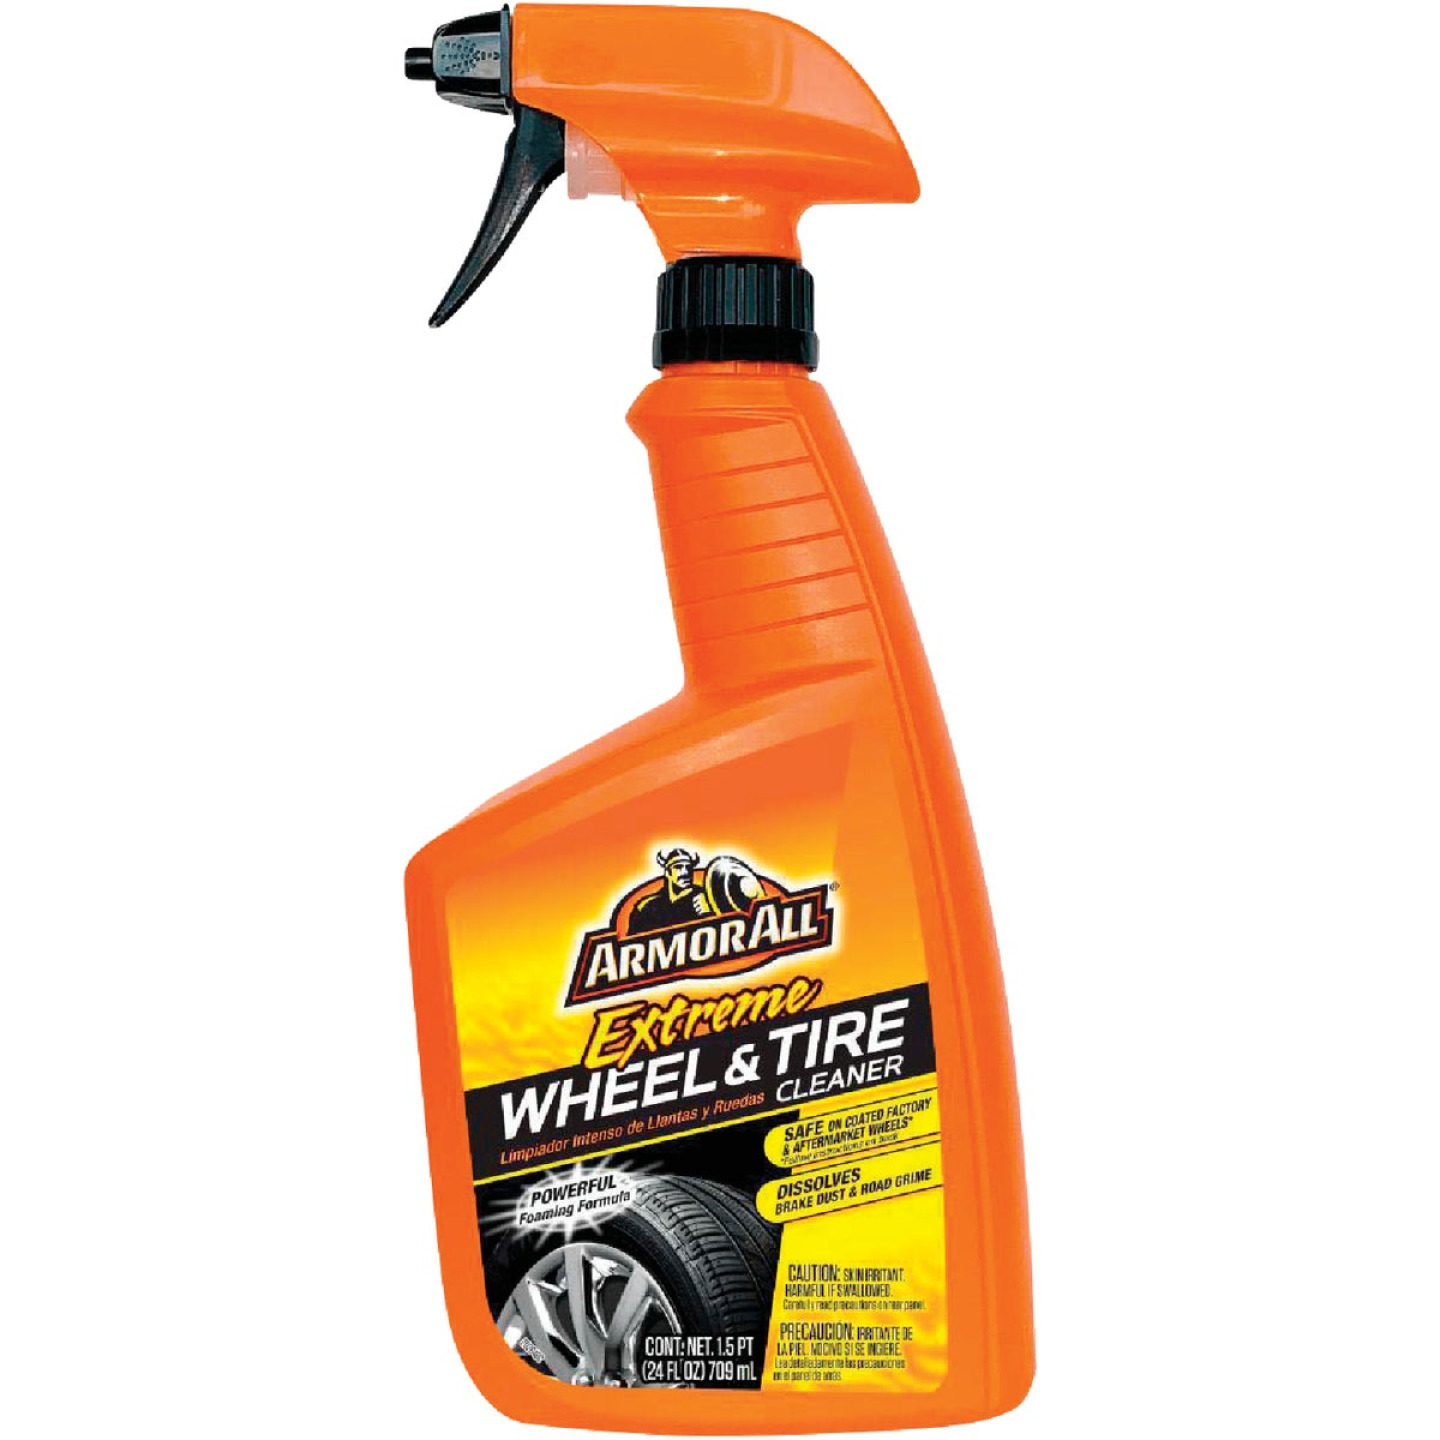 Armor All 24 Oz. Trigger Spray Wheel Cleaner Image 1